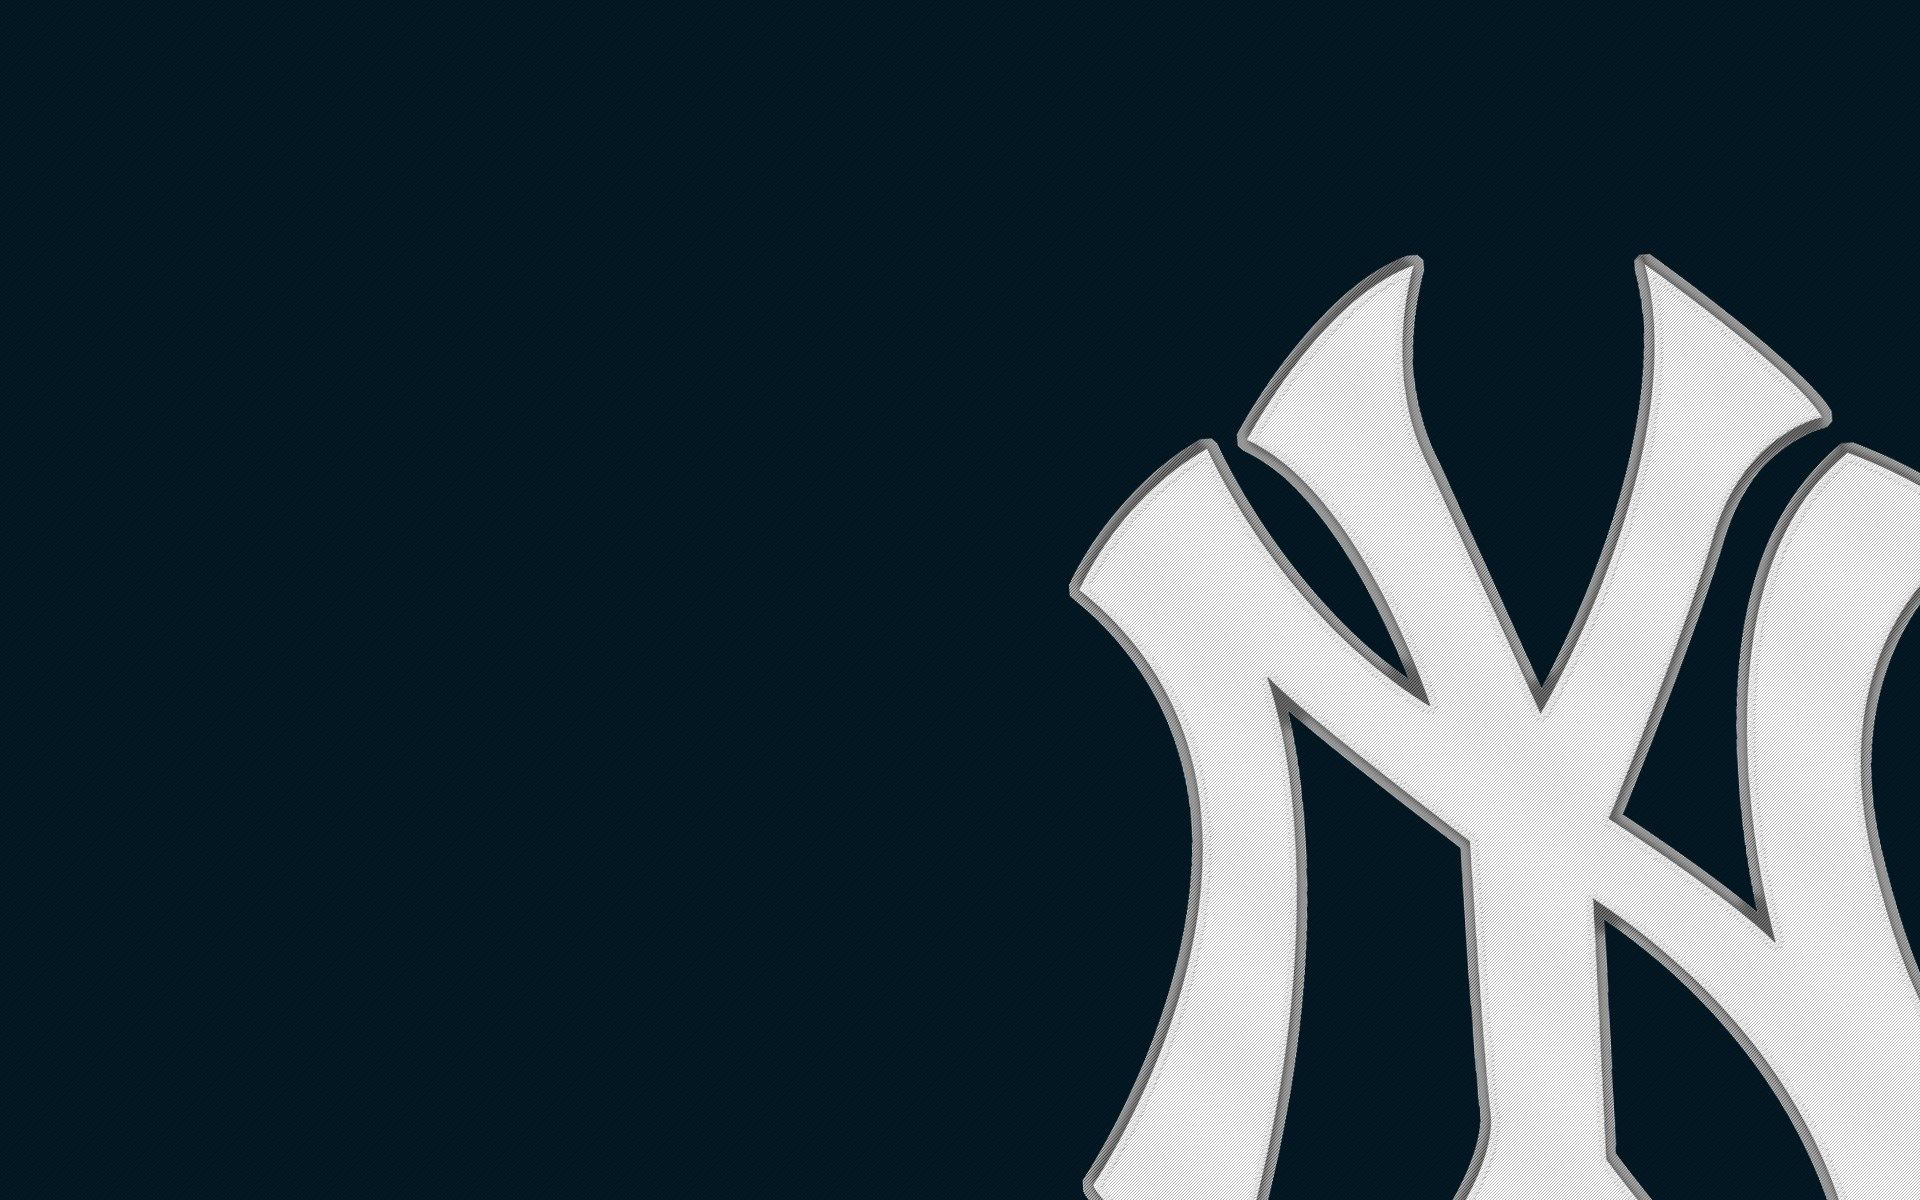 yankees wallpapers for mac free New york yankees logo